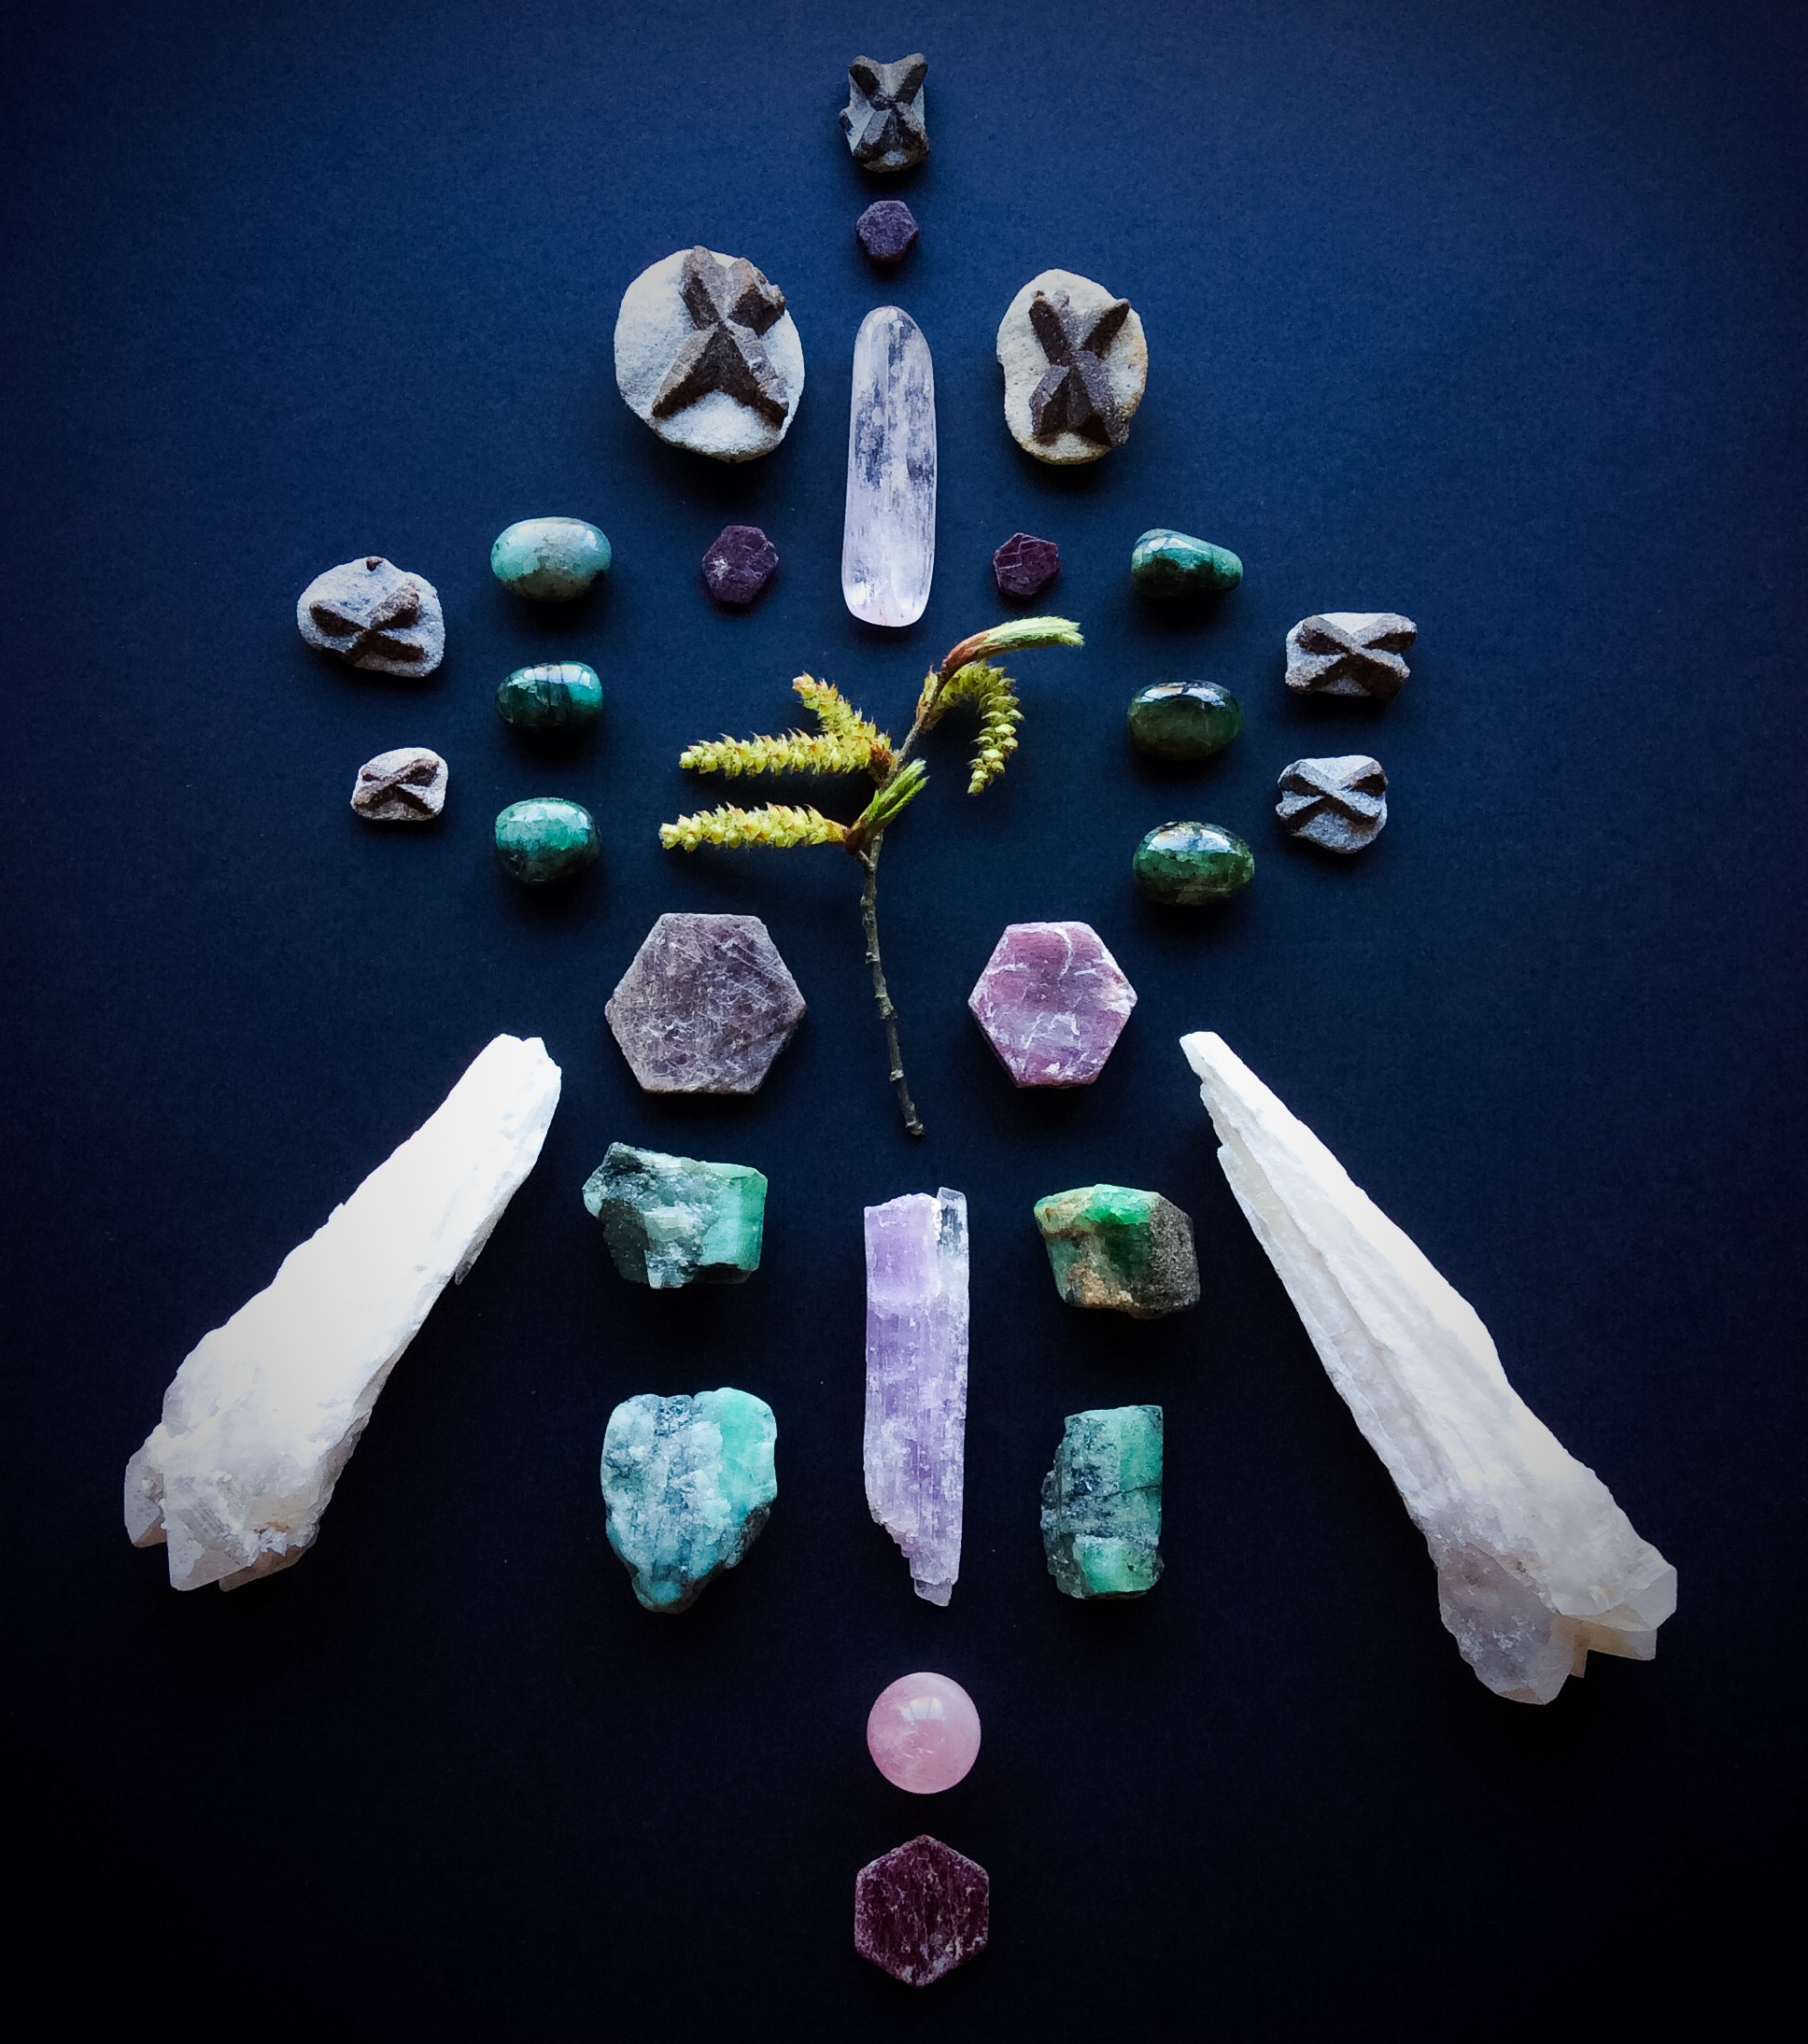 Ruby, Emerald, Kunzite, Rose Quartz, Staurolite, Druid White Quartz and Fagus